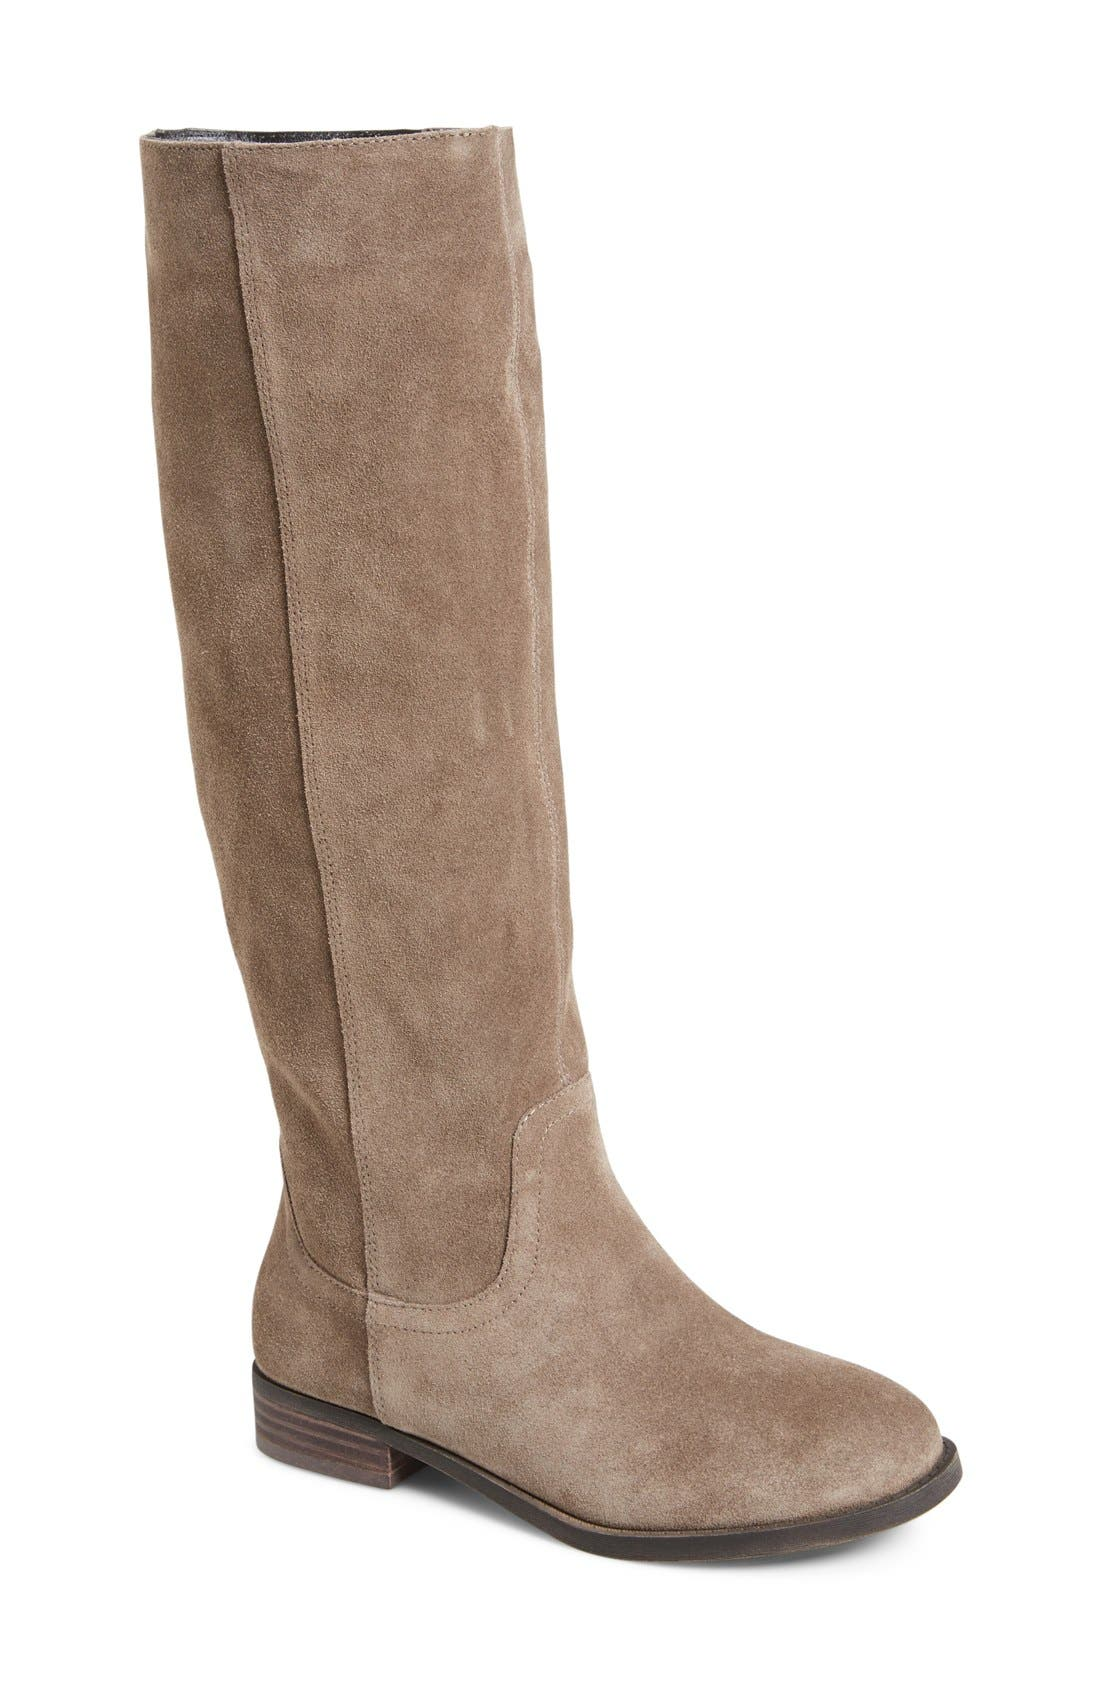 Alternate Image 1 Selected - Sole Society 'Kellini' Suede Knee High Boot (Women)